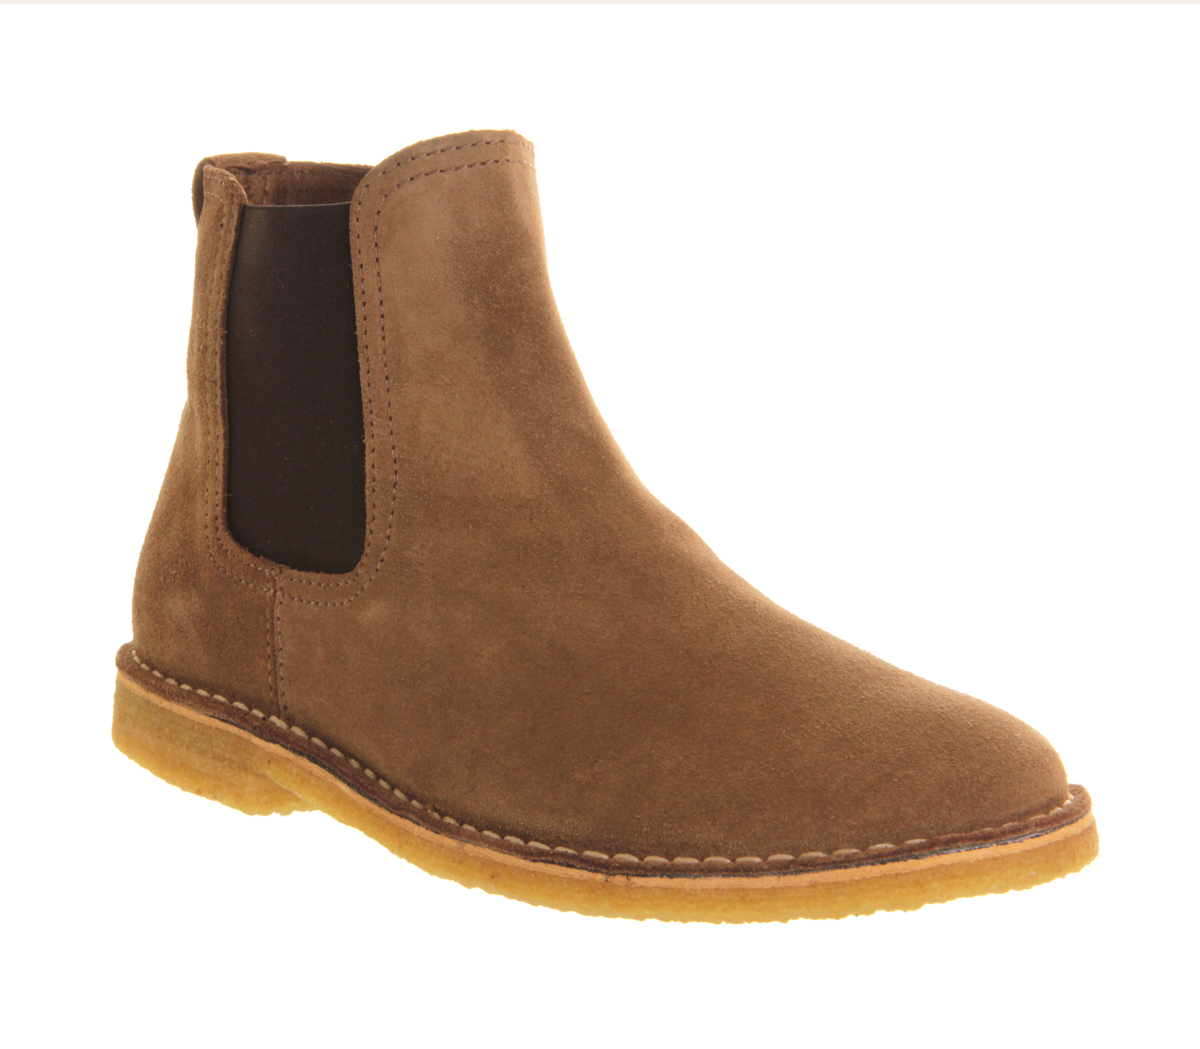 mens ask the missus cookie chelsea boot beige suede boots size 6 ebay. Black Bedroom Furniture Sets. Home Design Ideas